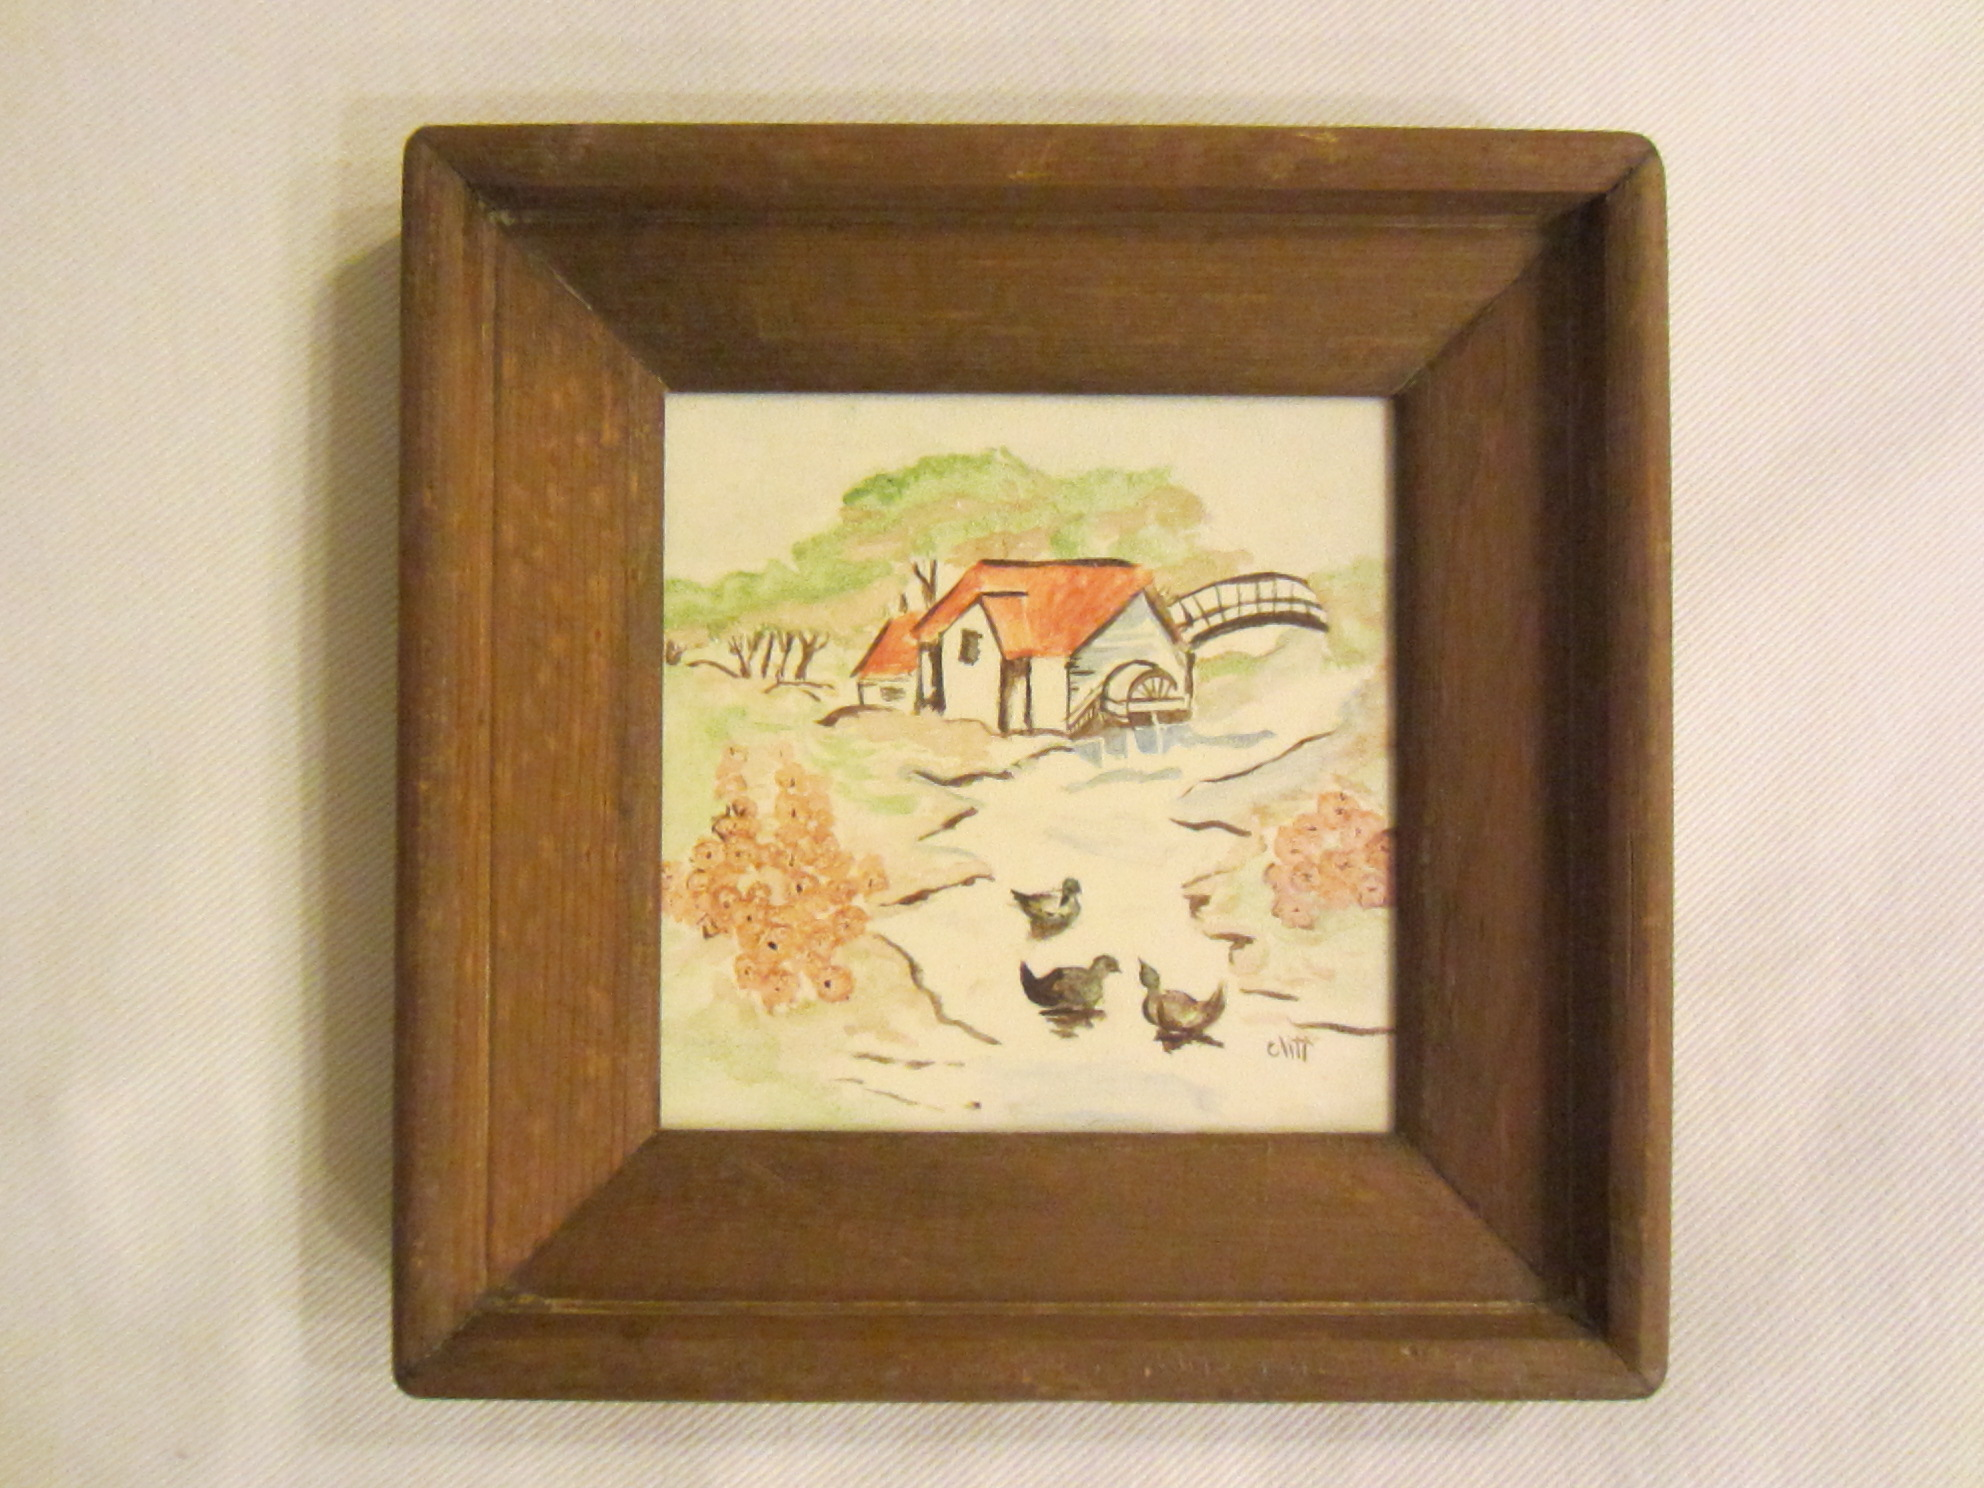 Landscape Hand Painted Framed Ceramic Tile For Sale | Antiques.com ...